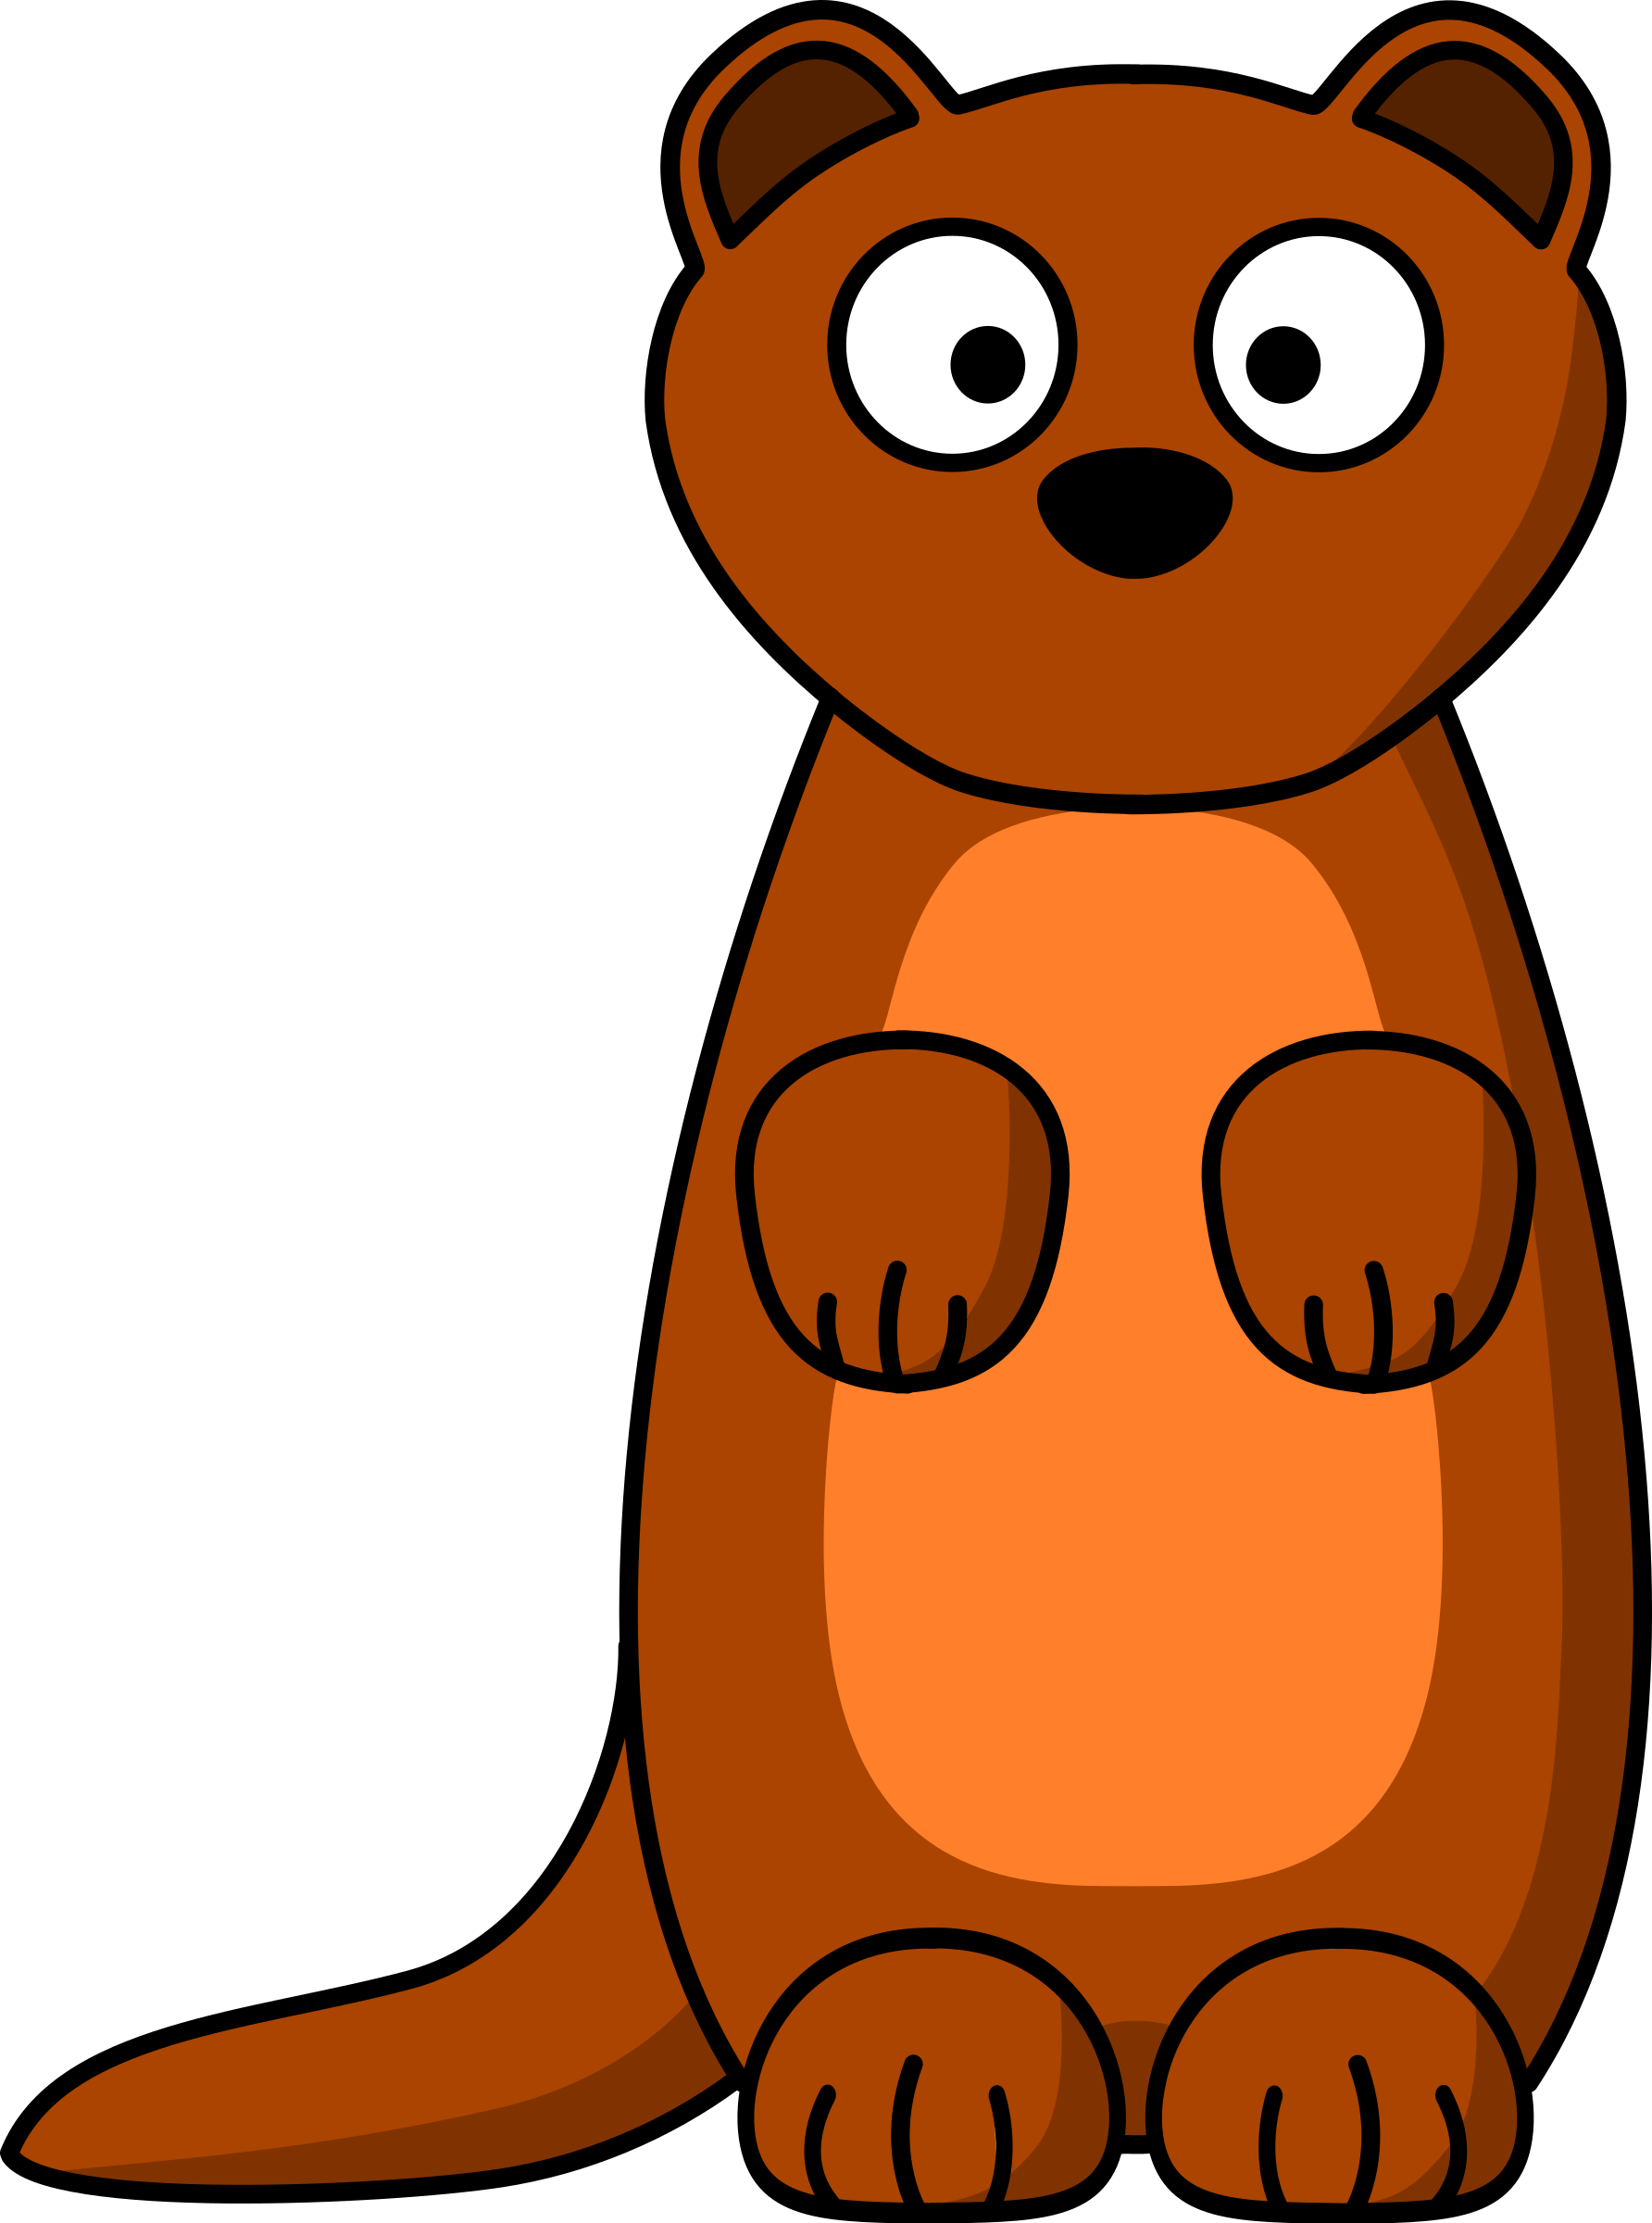 Stoat clipart #2, Download drawings